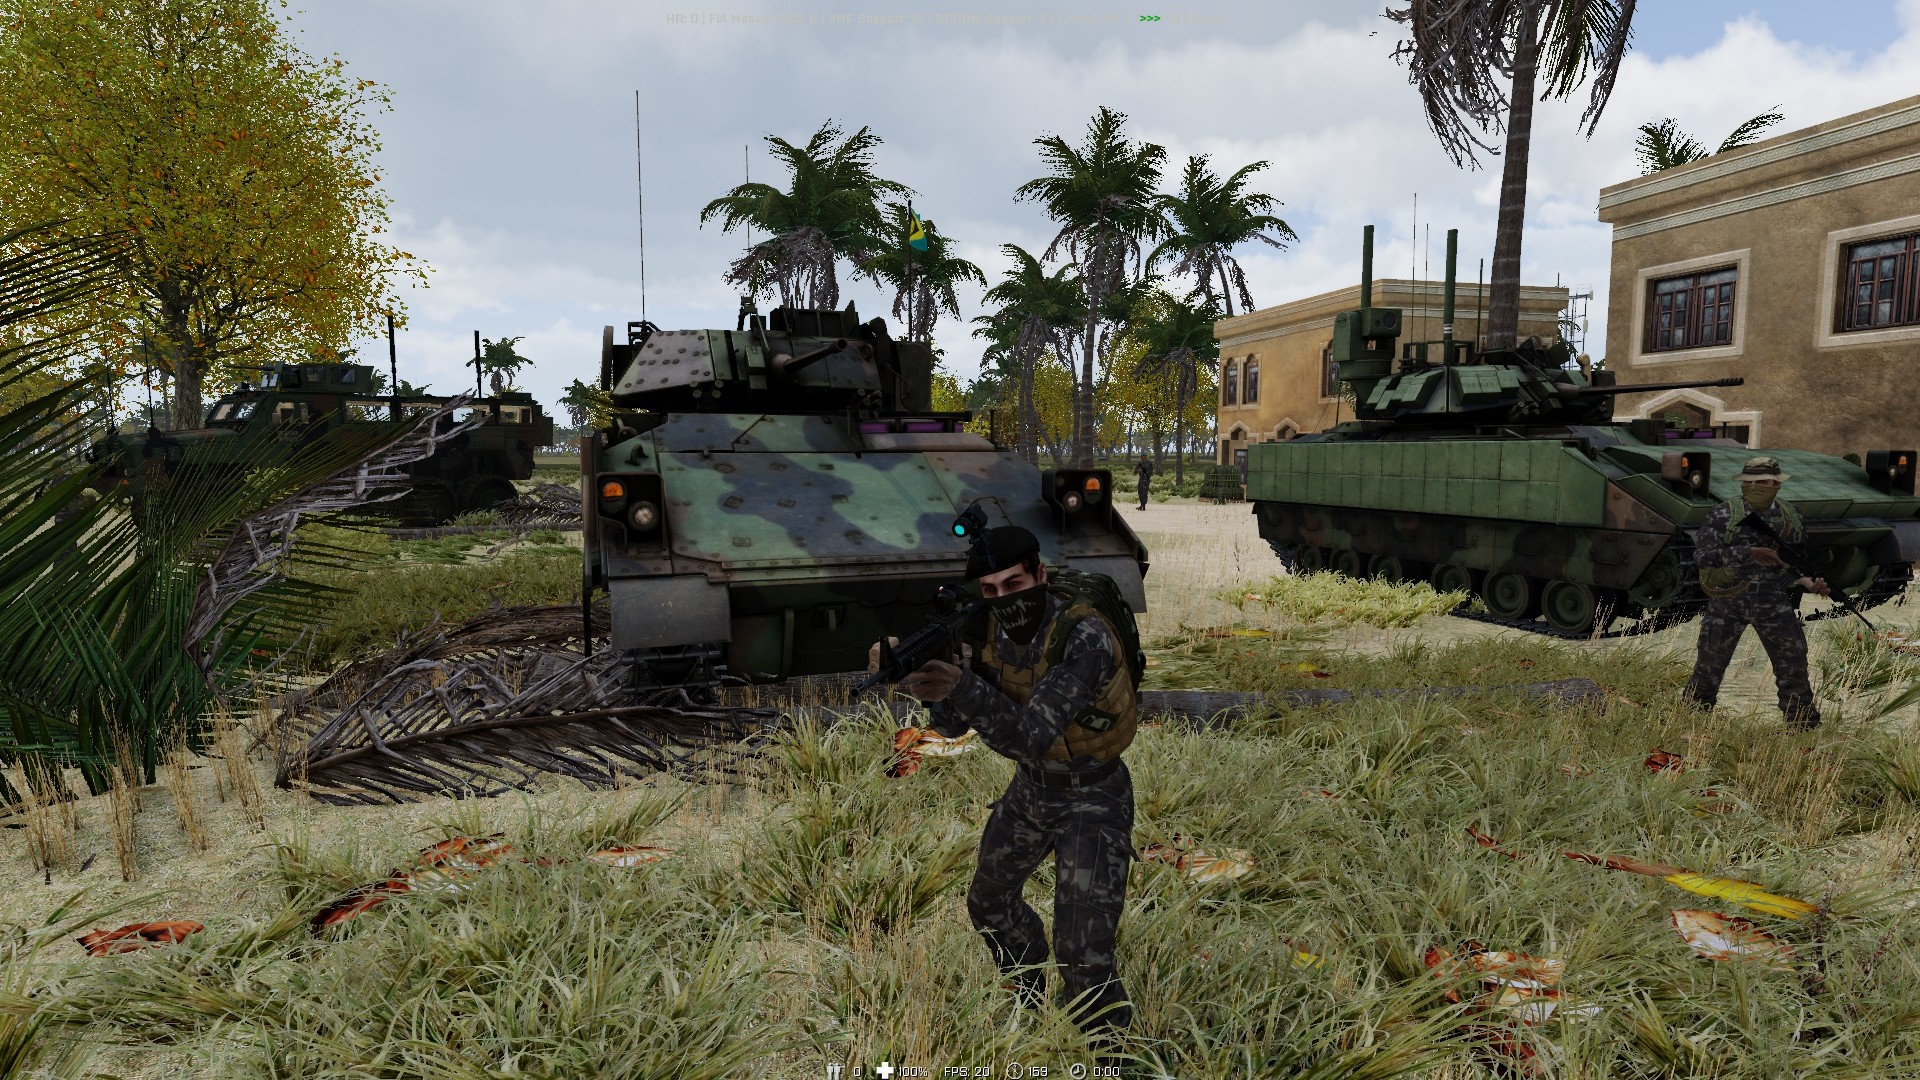 Noob: Missing a captured Bmp after persistent save